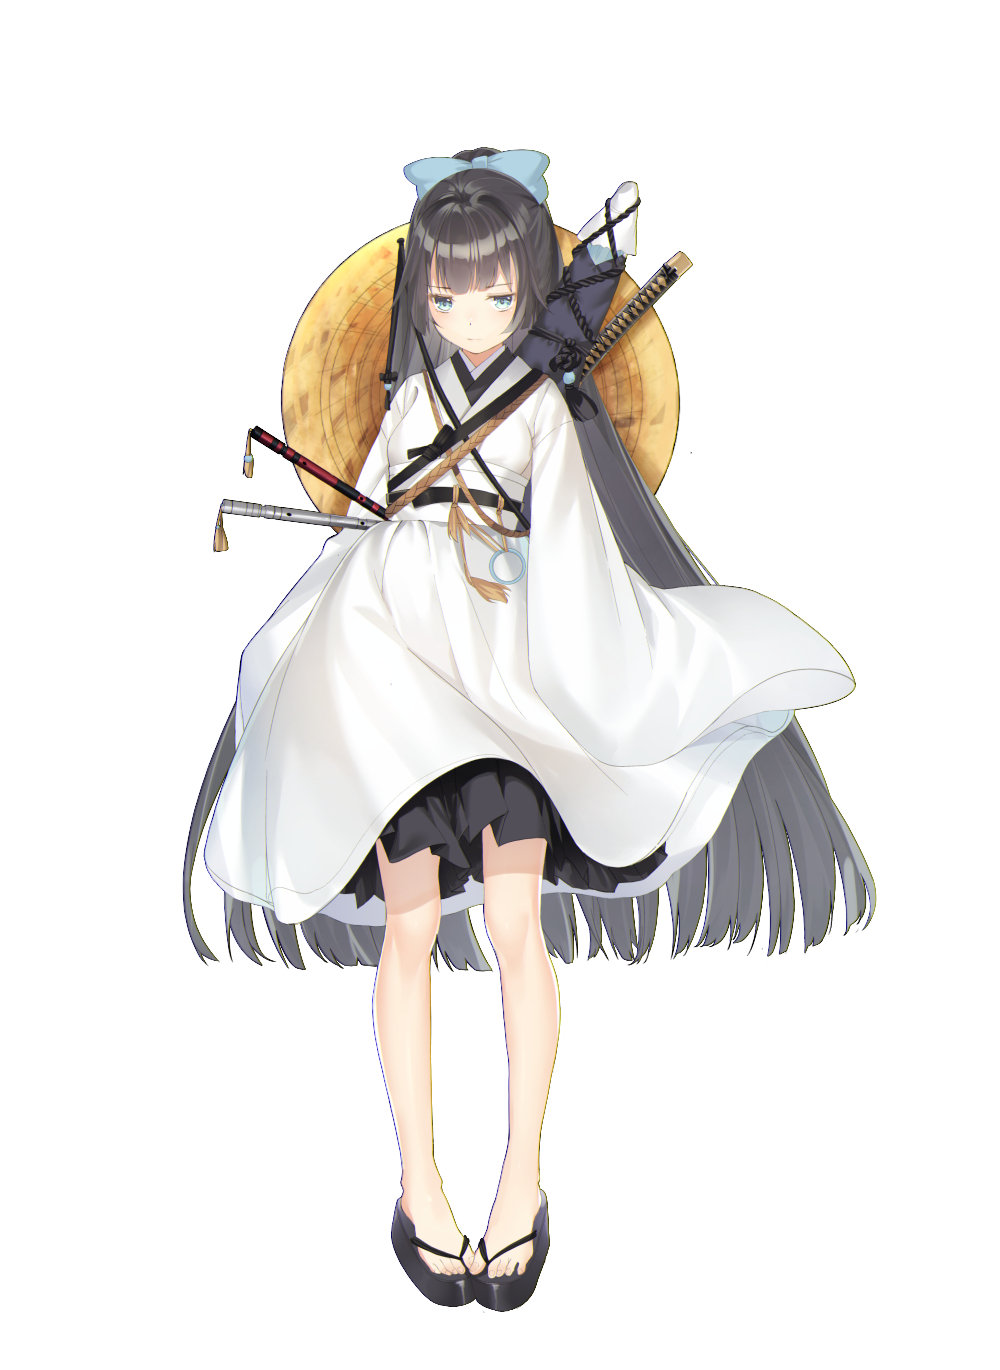 1girl black_hair blue_bow blue_eyes blush bow character_request closed_mouth dhfz181 flute hair_bow hat hat_removed headwear_removed highres instrument japanese_clothes katana light_blush long_hair long_sleeves original rope sheath sheathed simple_background sleeves_past_fingers sleeves_past_wrists solo sword toenails touken_ranbu very_long_hair weapon weapon_on_back white_background wide_sleeves